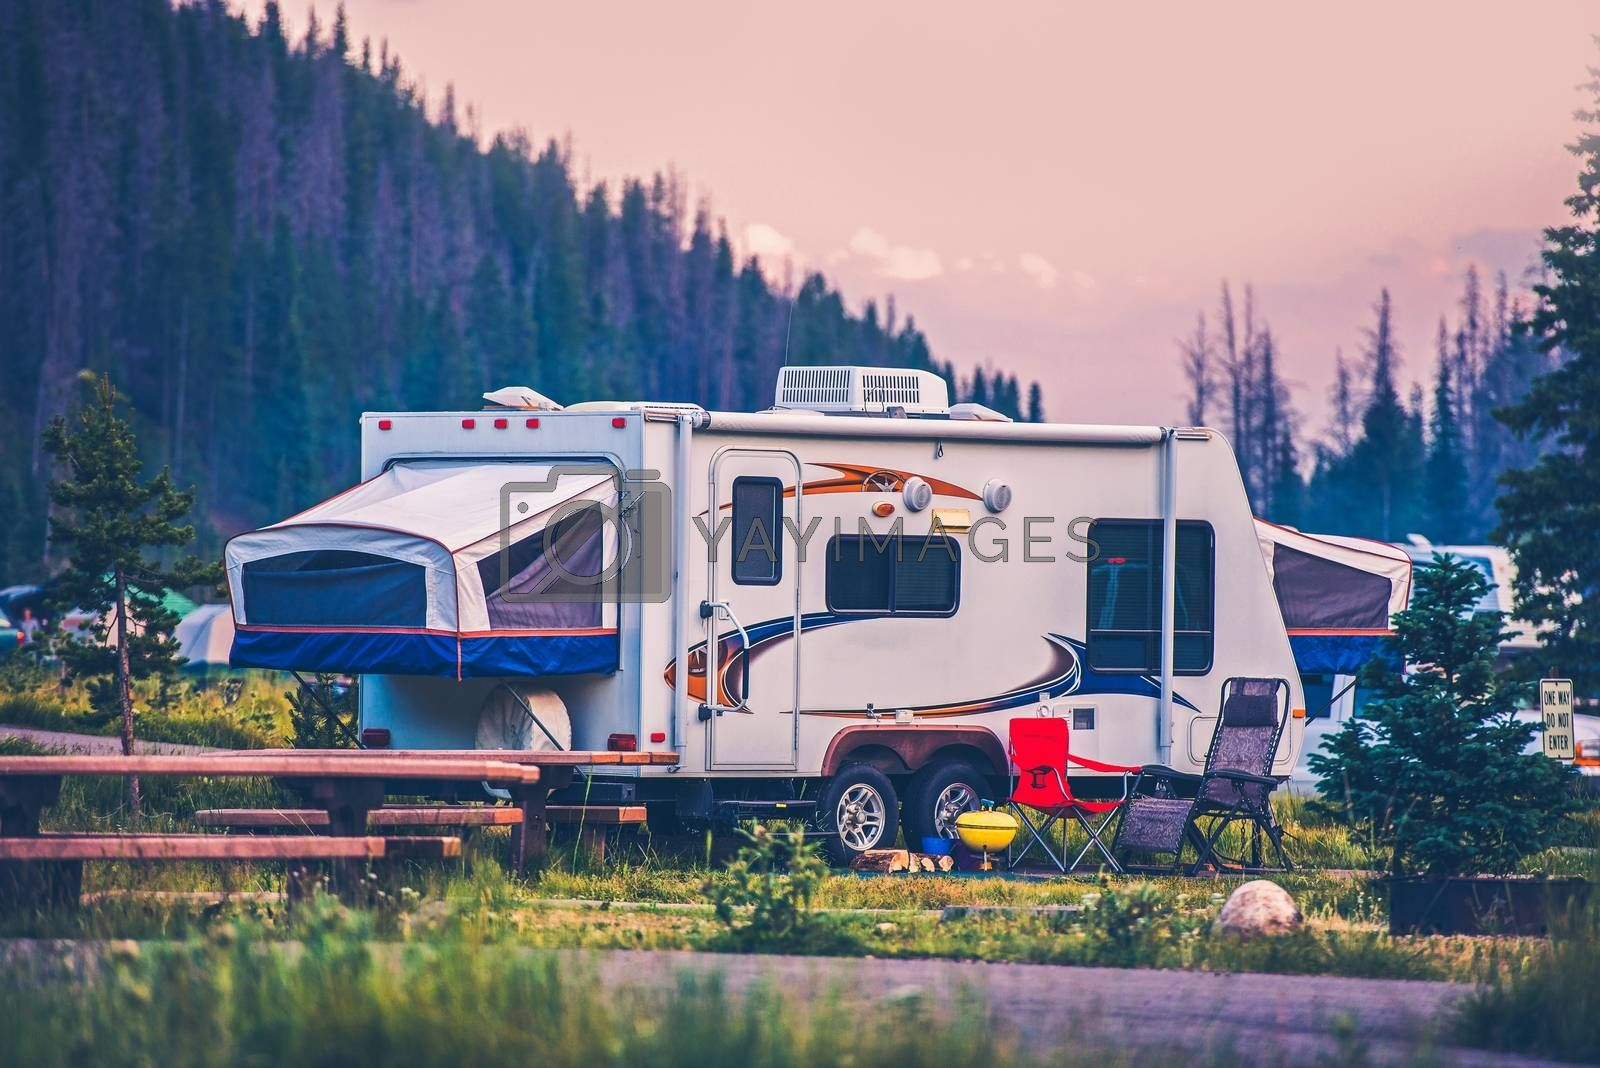 Camper Travel Trailer. Travel Trailer Pop Up Style Camping in Colorado.